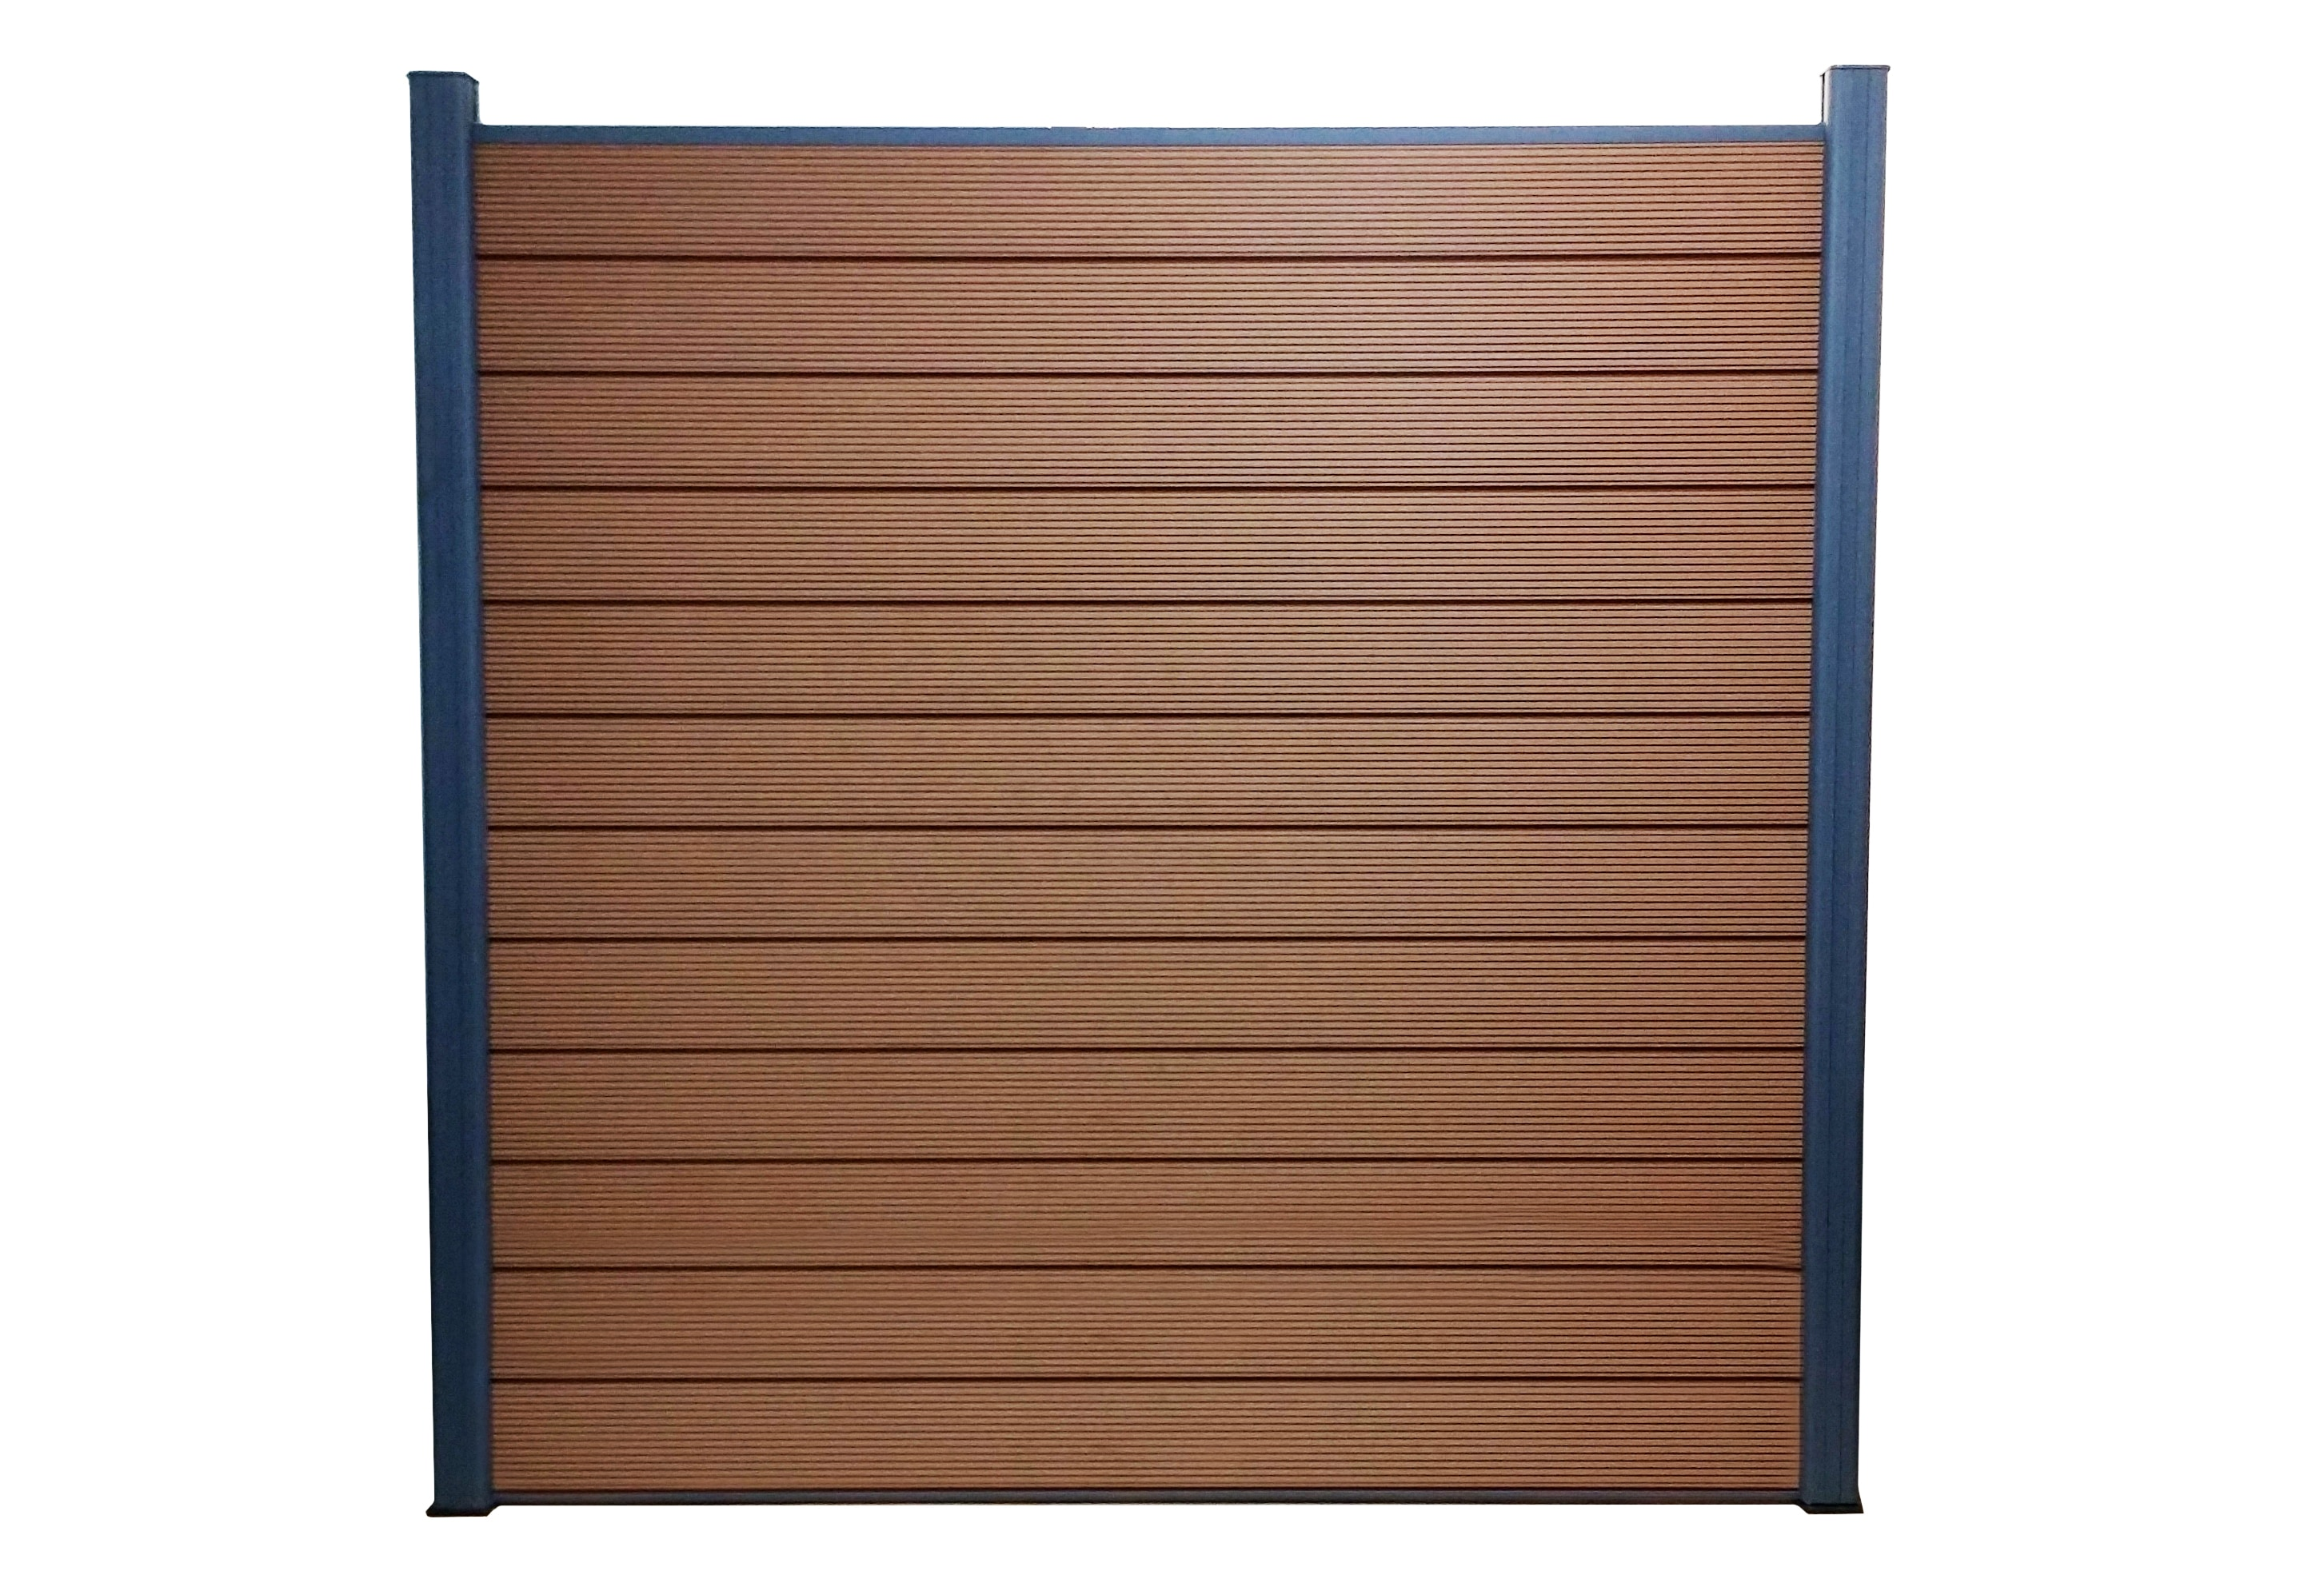 Privacy Fence / Euro Style Mocha / 6'x6' With Two Posts EP Euro Style 6x6 Ft. Composite Privacy Fence Kit 0